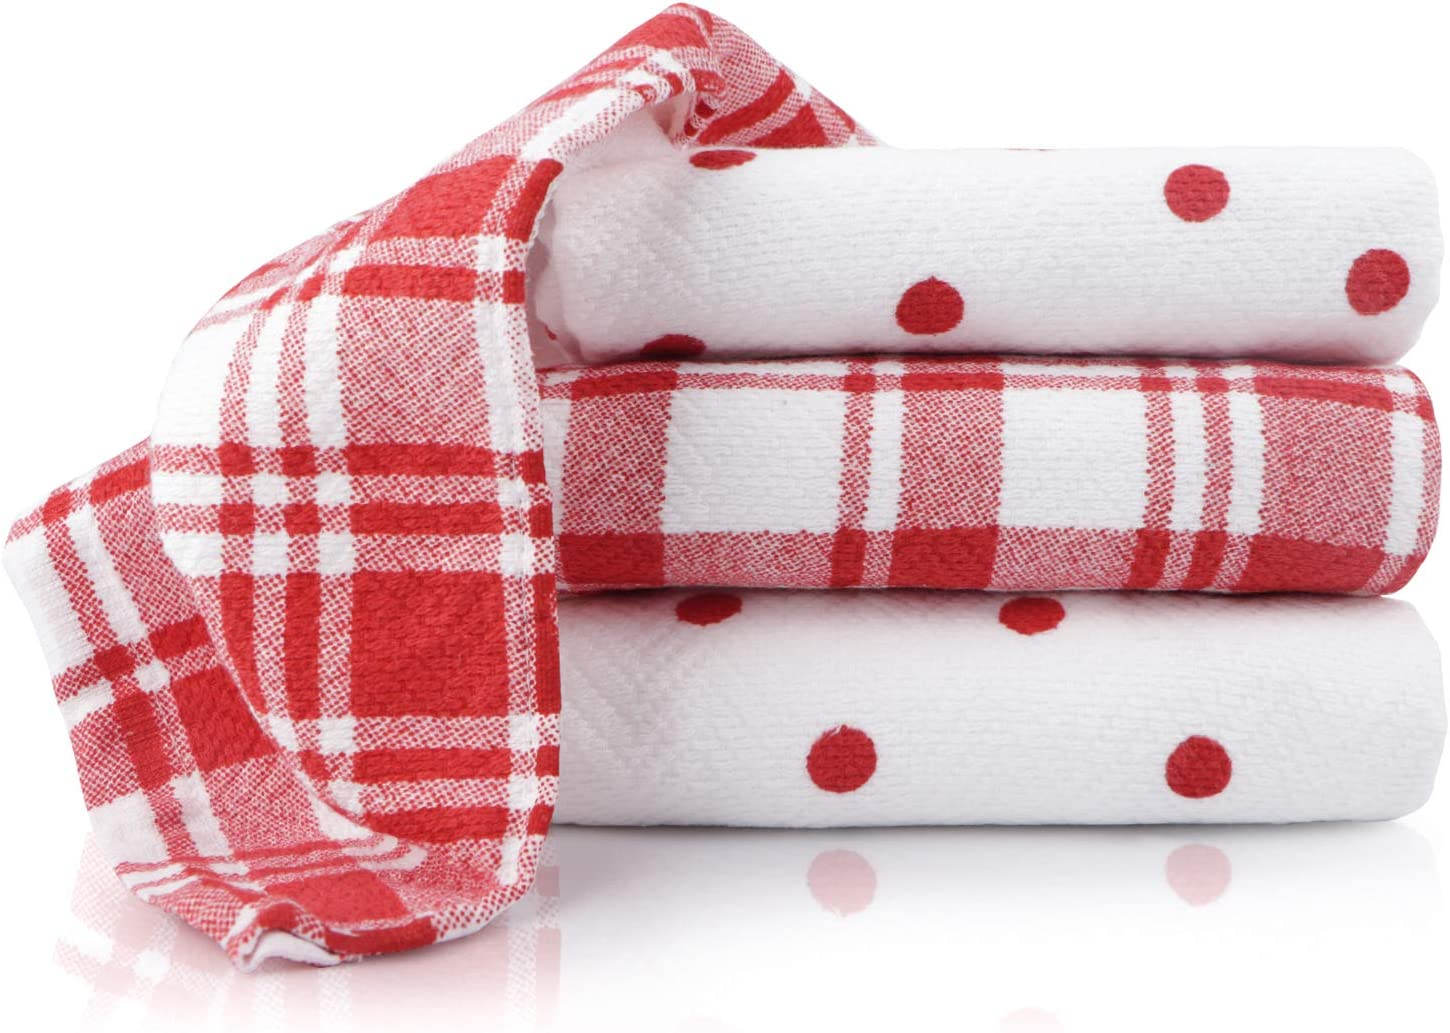 100% Cotton,Red Kitchen Towels Set,Soft and Absorbent Dish Towels,Fast Drying Dish Towels,Tea Towels, Red Check & Pigment, 18 X 28 (4 Pack)